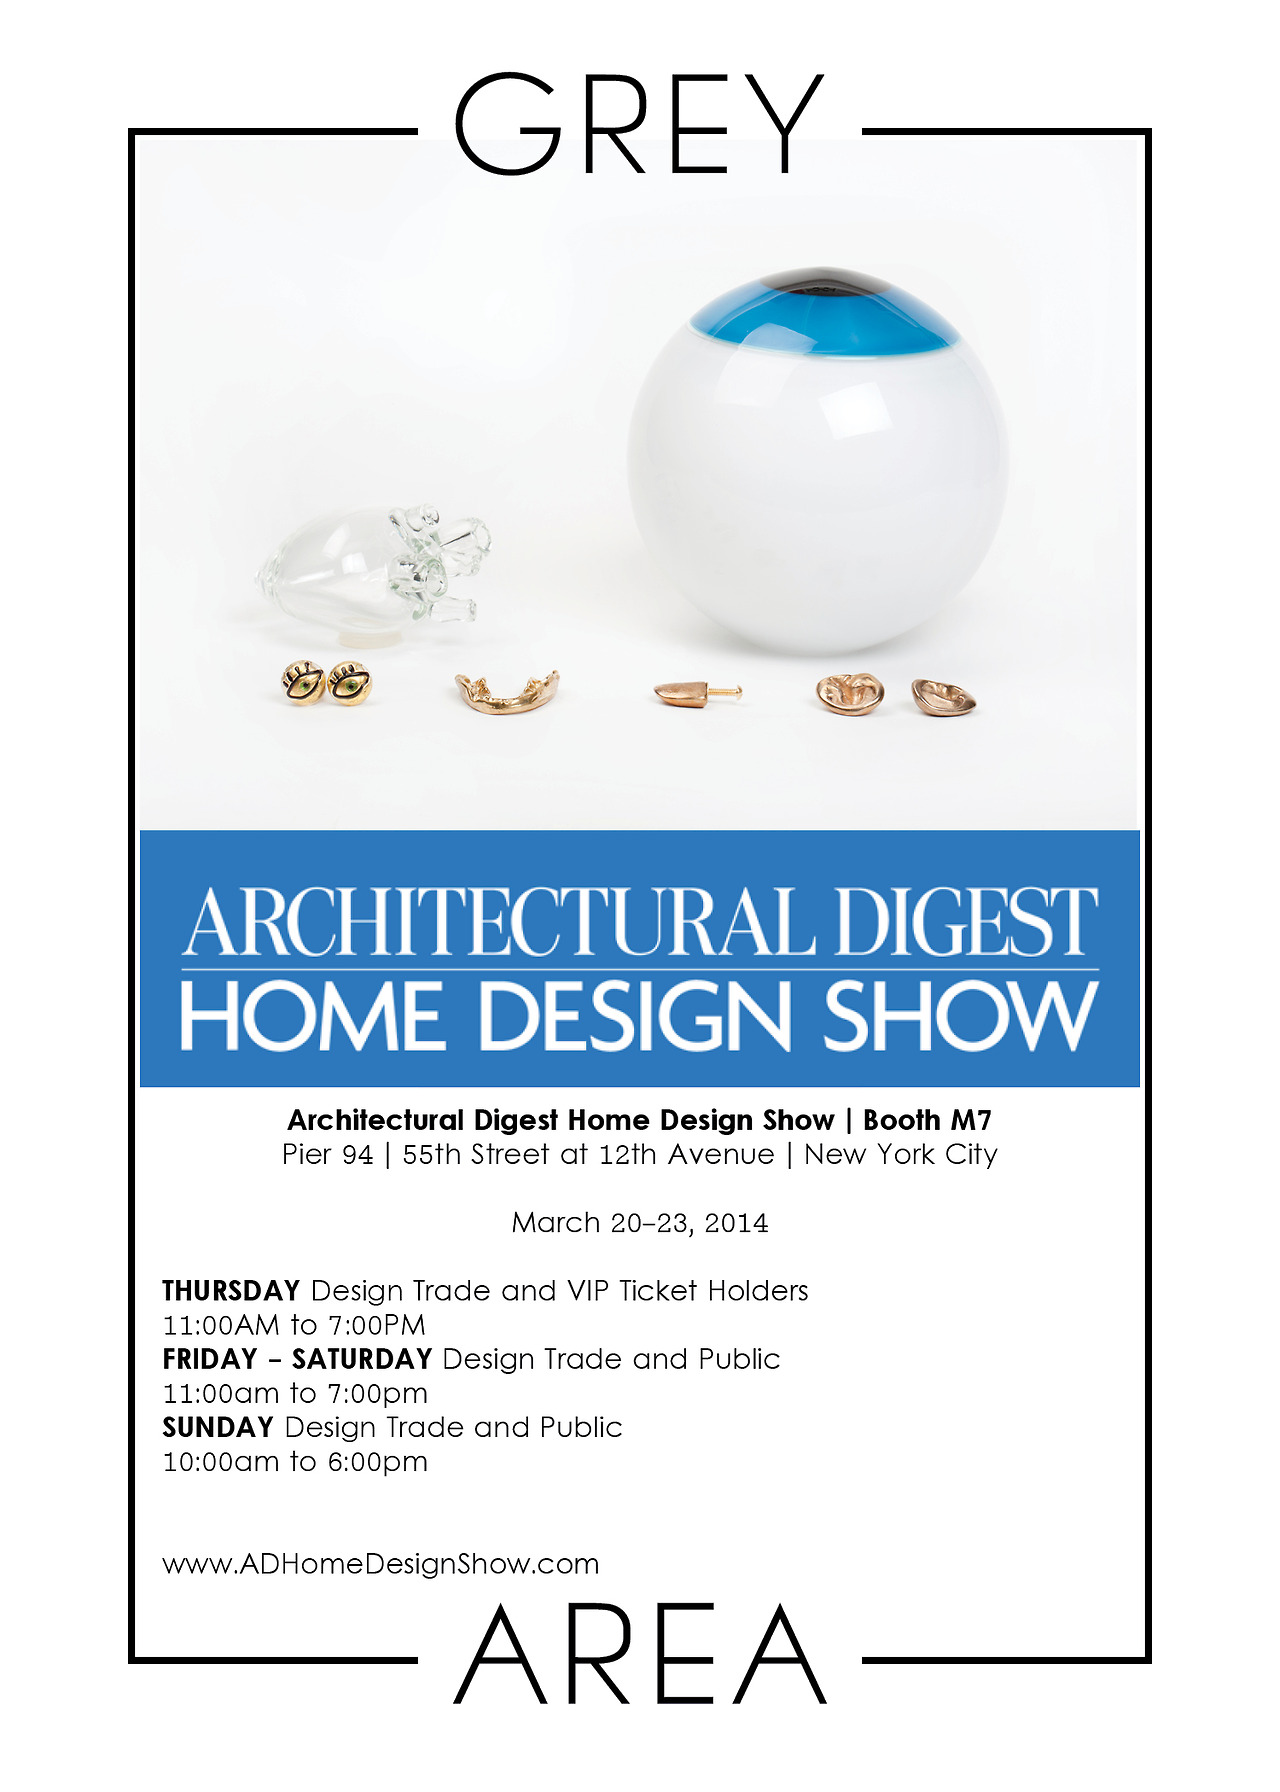 Find us at Booth M7 at the Architectural Digest Home Design Show next week, March 20-23!